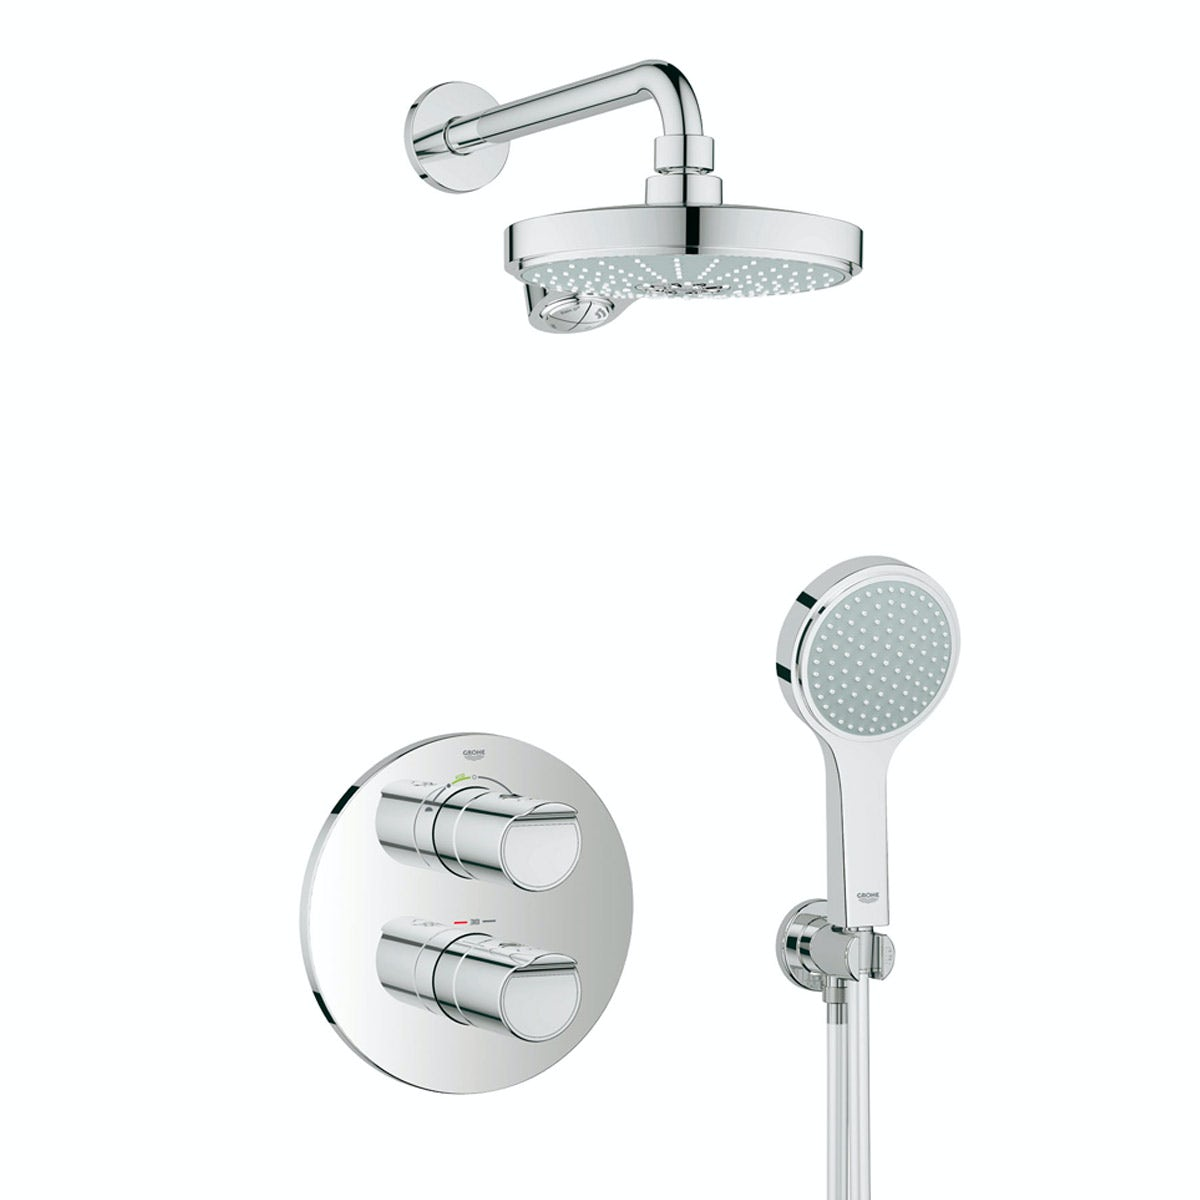 Grohe grohtherm 2000 concealed thermostatic shower set - Grohe grohtherm 2000 ...